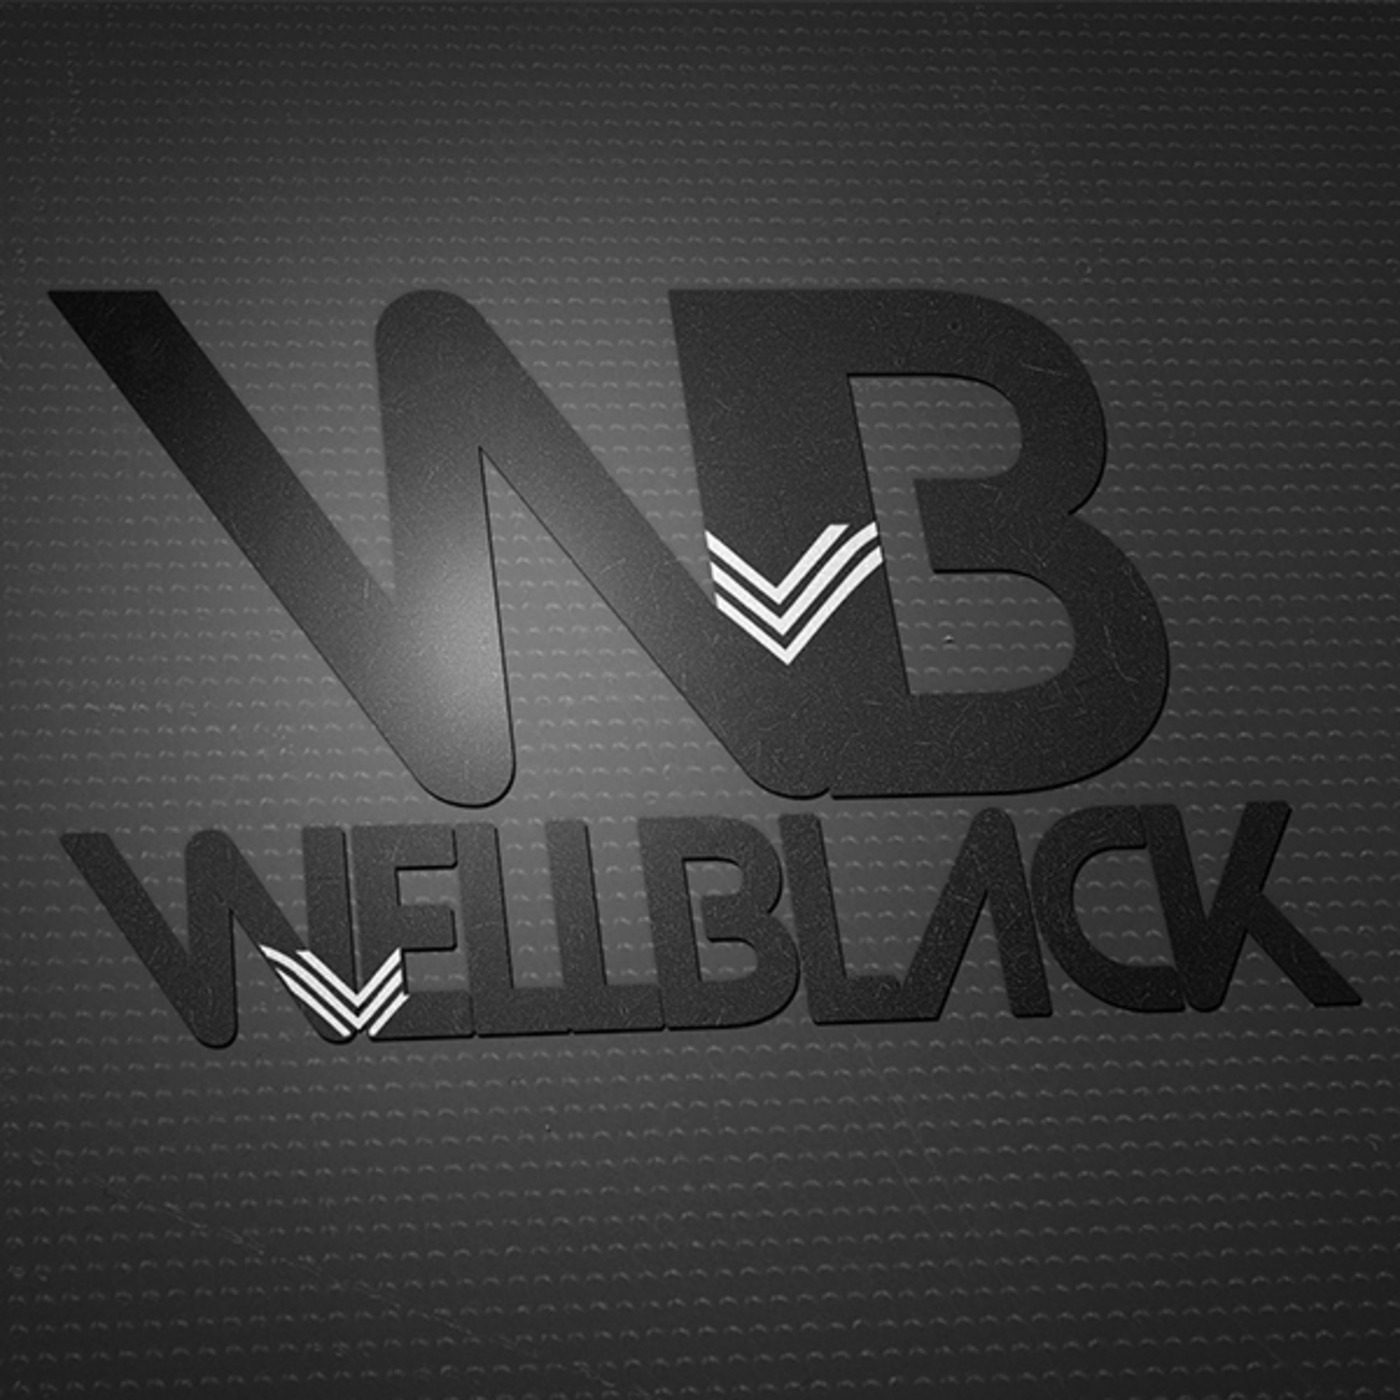 Wellblack - Black Friday Radio Show 001